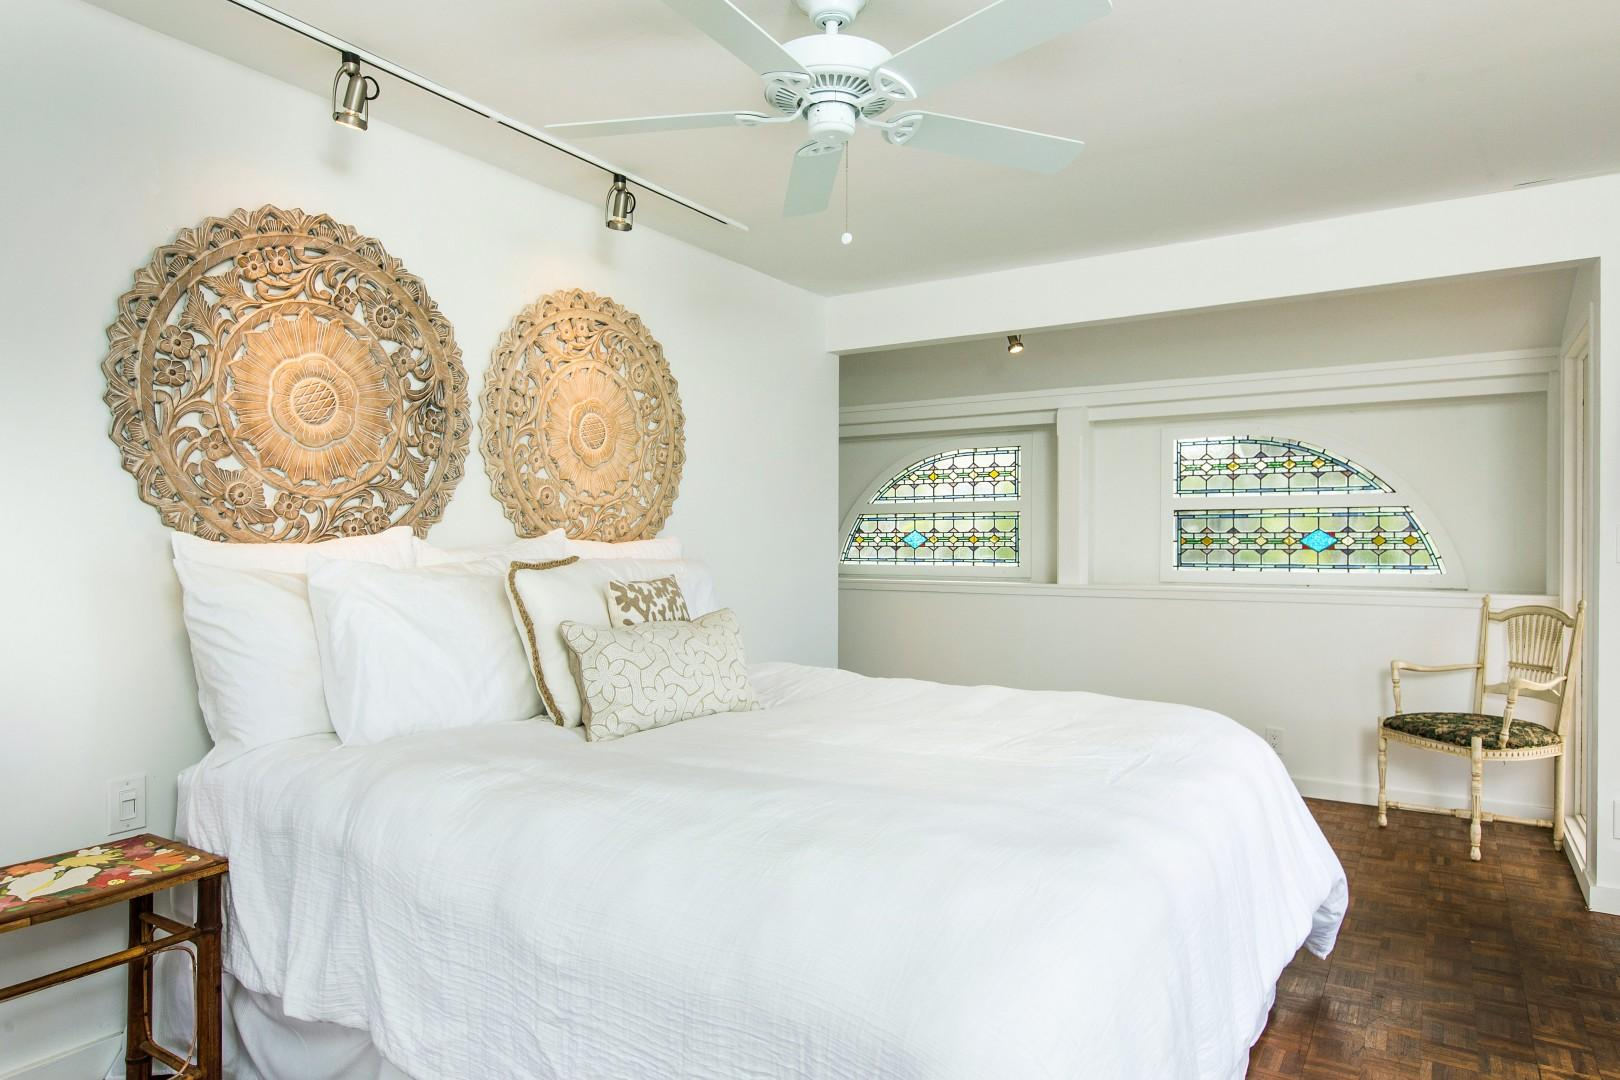 Upstairs you will find the master suite with an ocean view balcony, walk-in shower, and beautiful airflow.